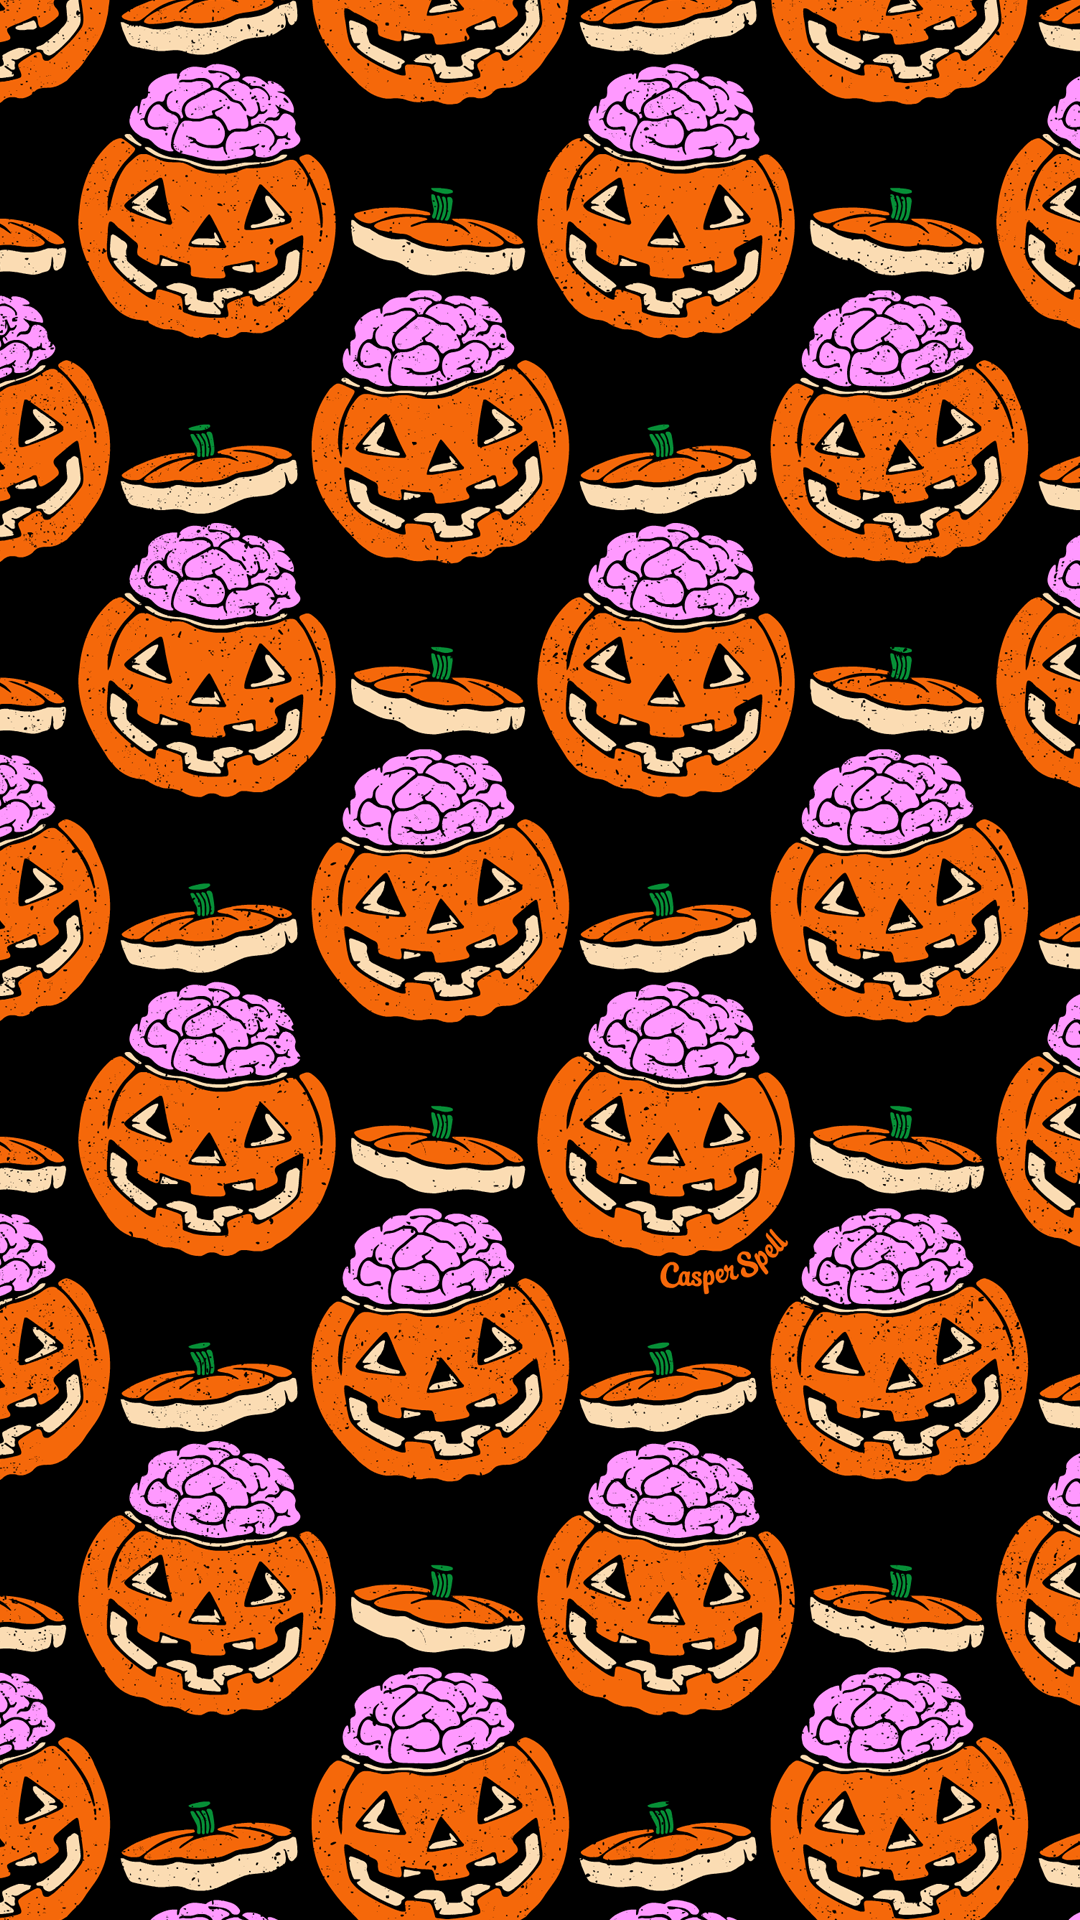 Halloween On The Brain Pattern For You Feel Free To Save As Your Phone Lock S Halloween Wallpaper Iphone Halloween Wallpaper Backgrounds Halloween Wallpaper